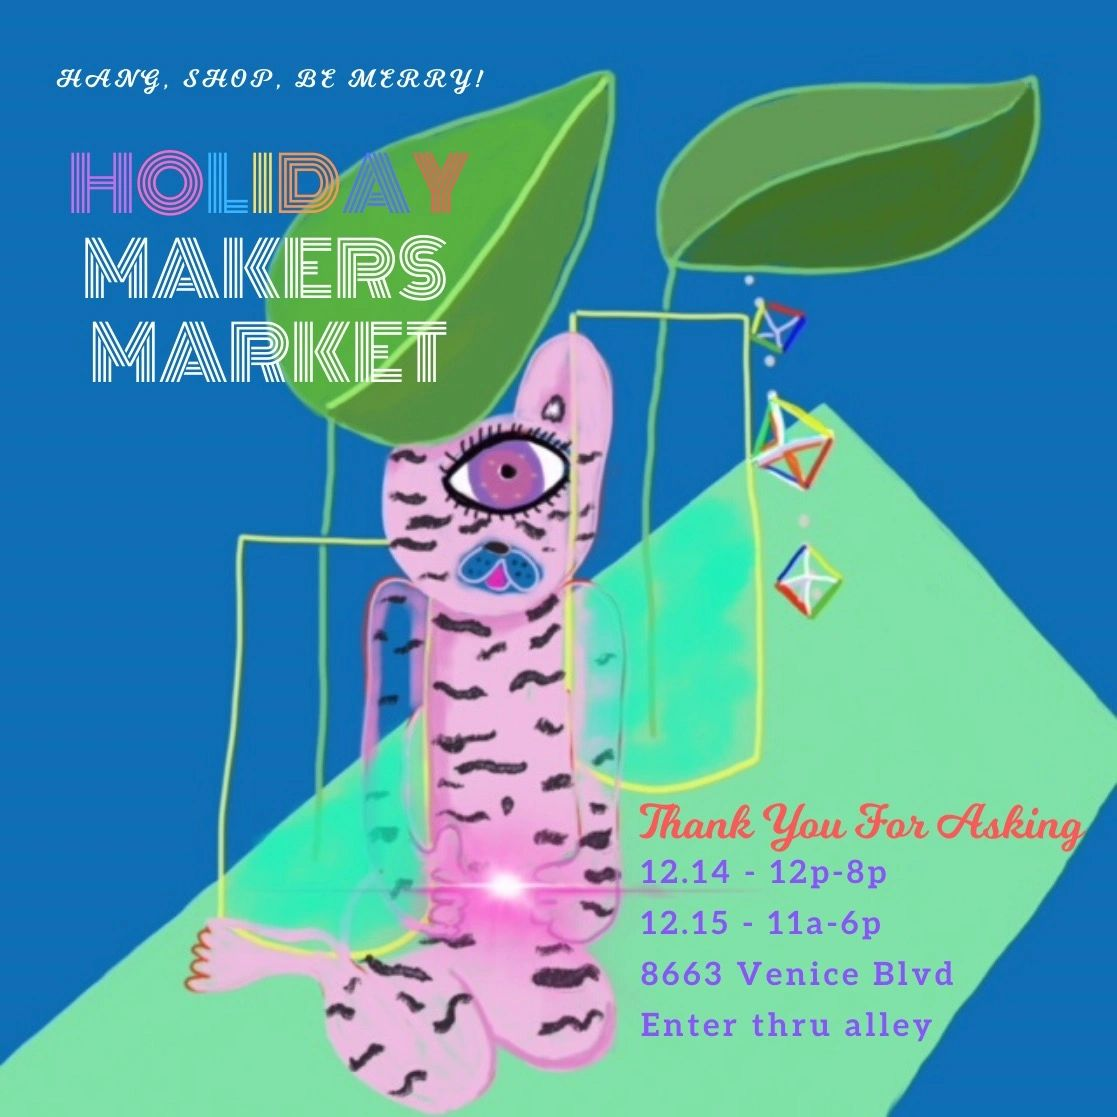 Holiday market for gifts, music, fun, art, crafts, kids, drinks, food thank you for asking